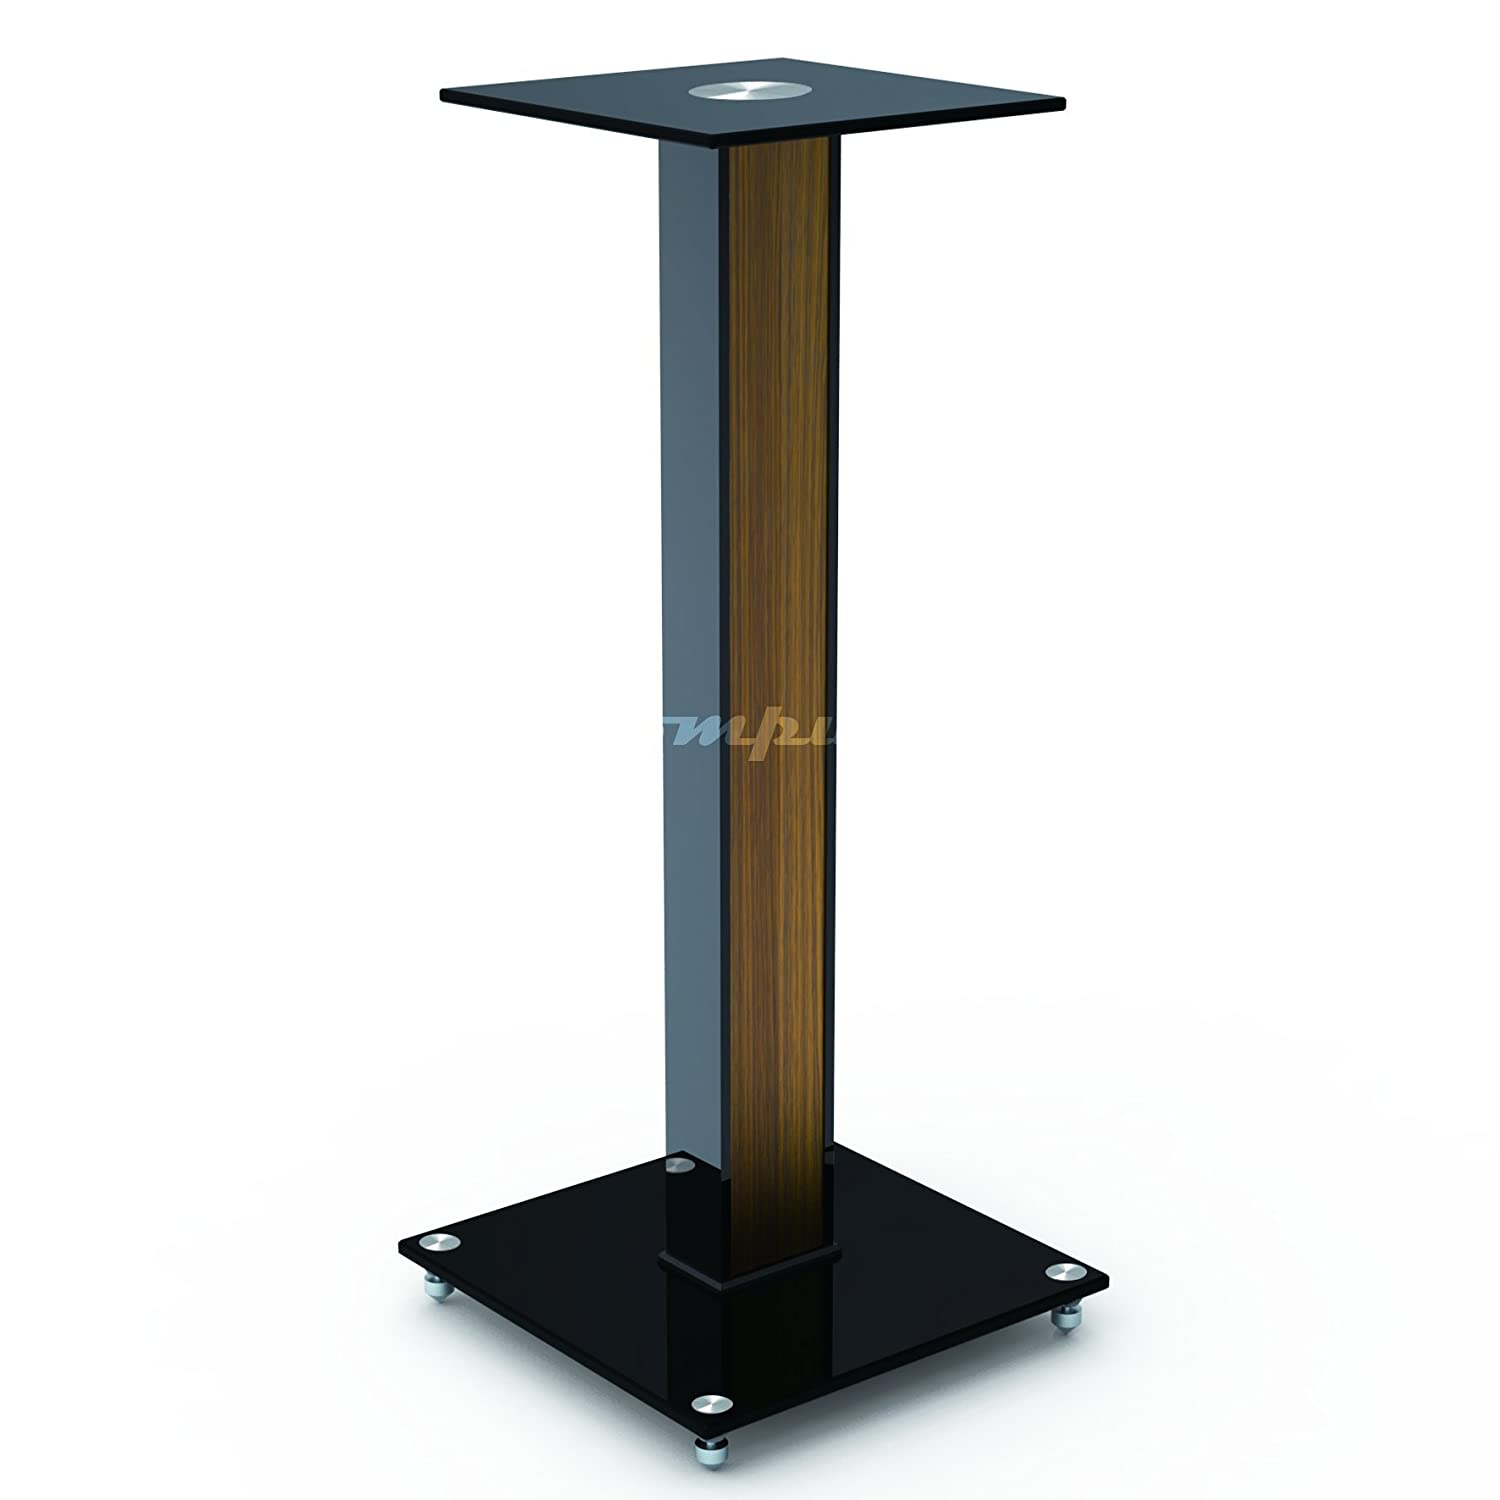 "AUDIO123 BS-03M Aluminum Glass and Wood Bookshelf Speaker Stand 23.6"" with floor spikes set of 2 Audio123LTD BS3LB"